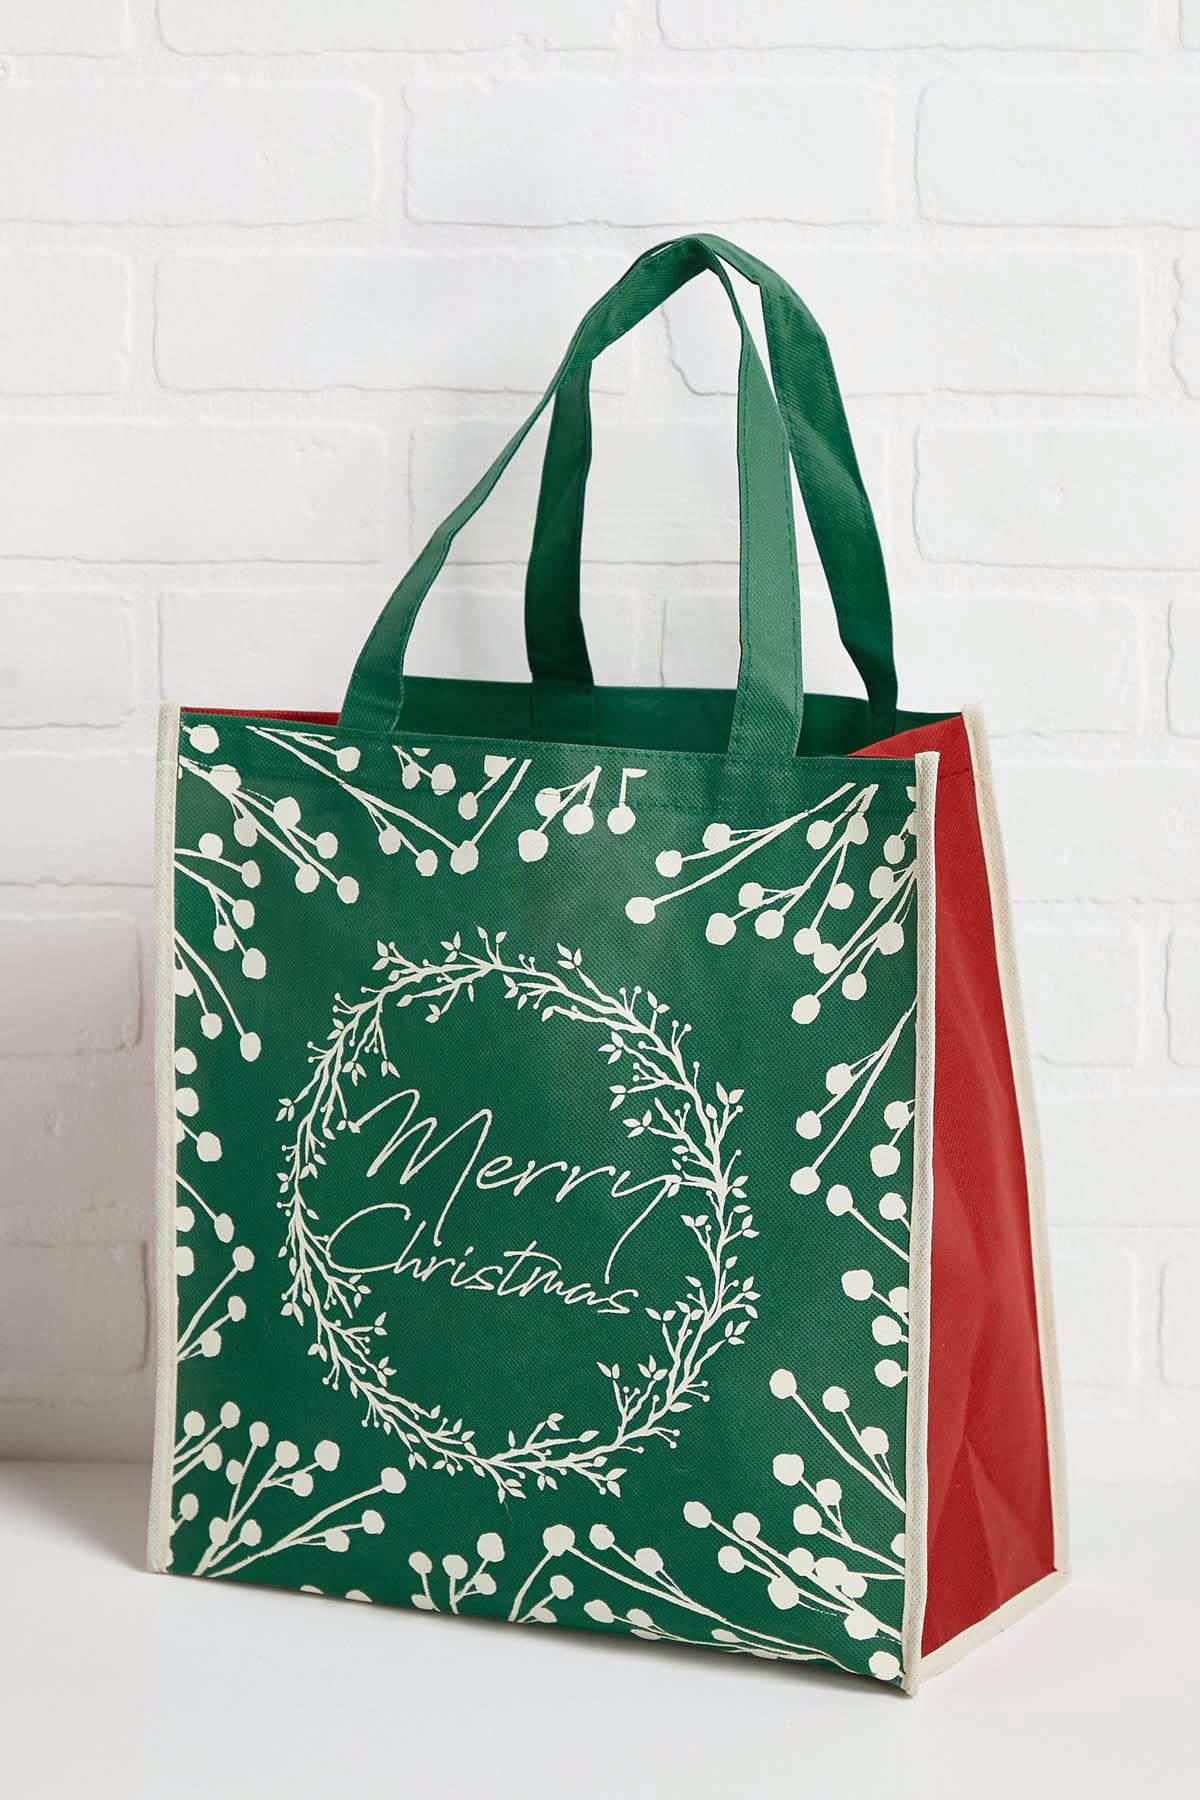 Merry Christmas Reusable Tote Bag